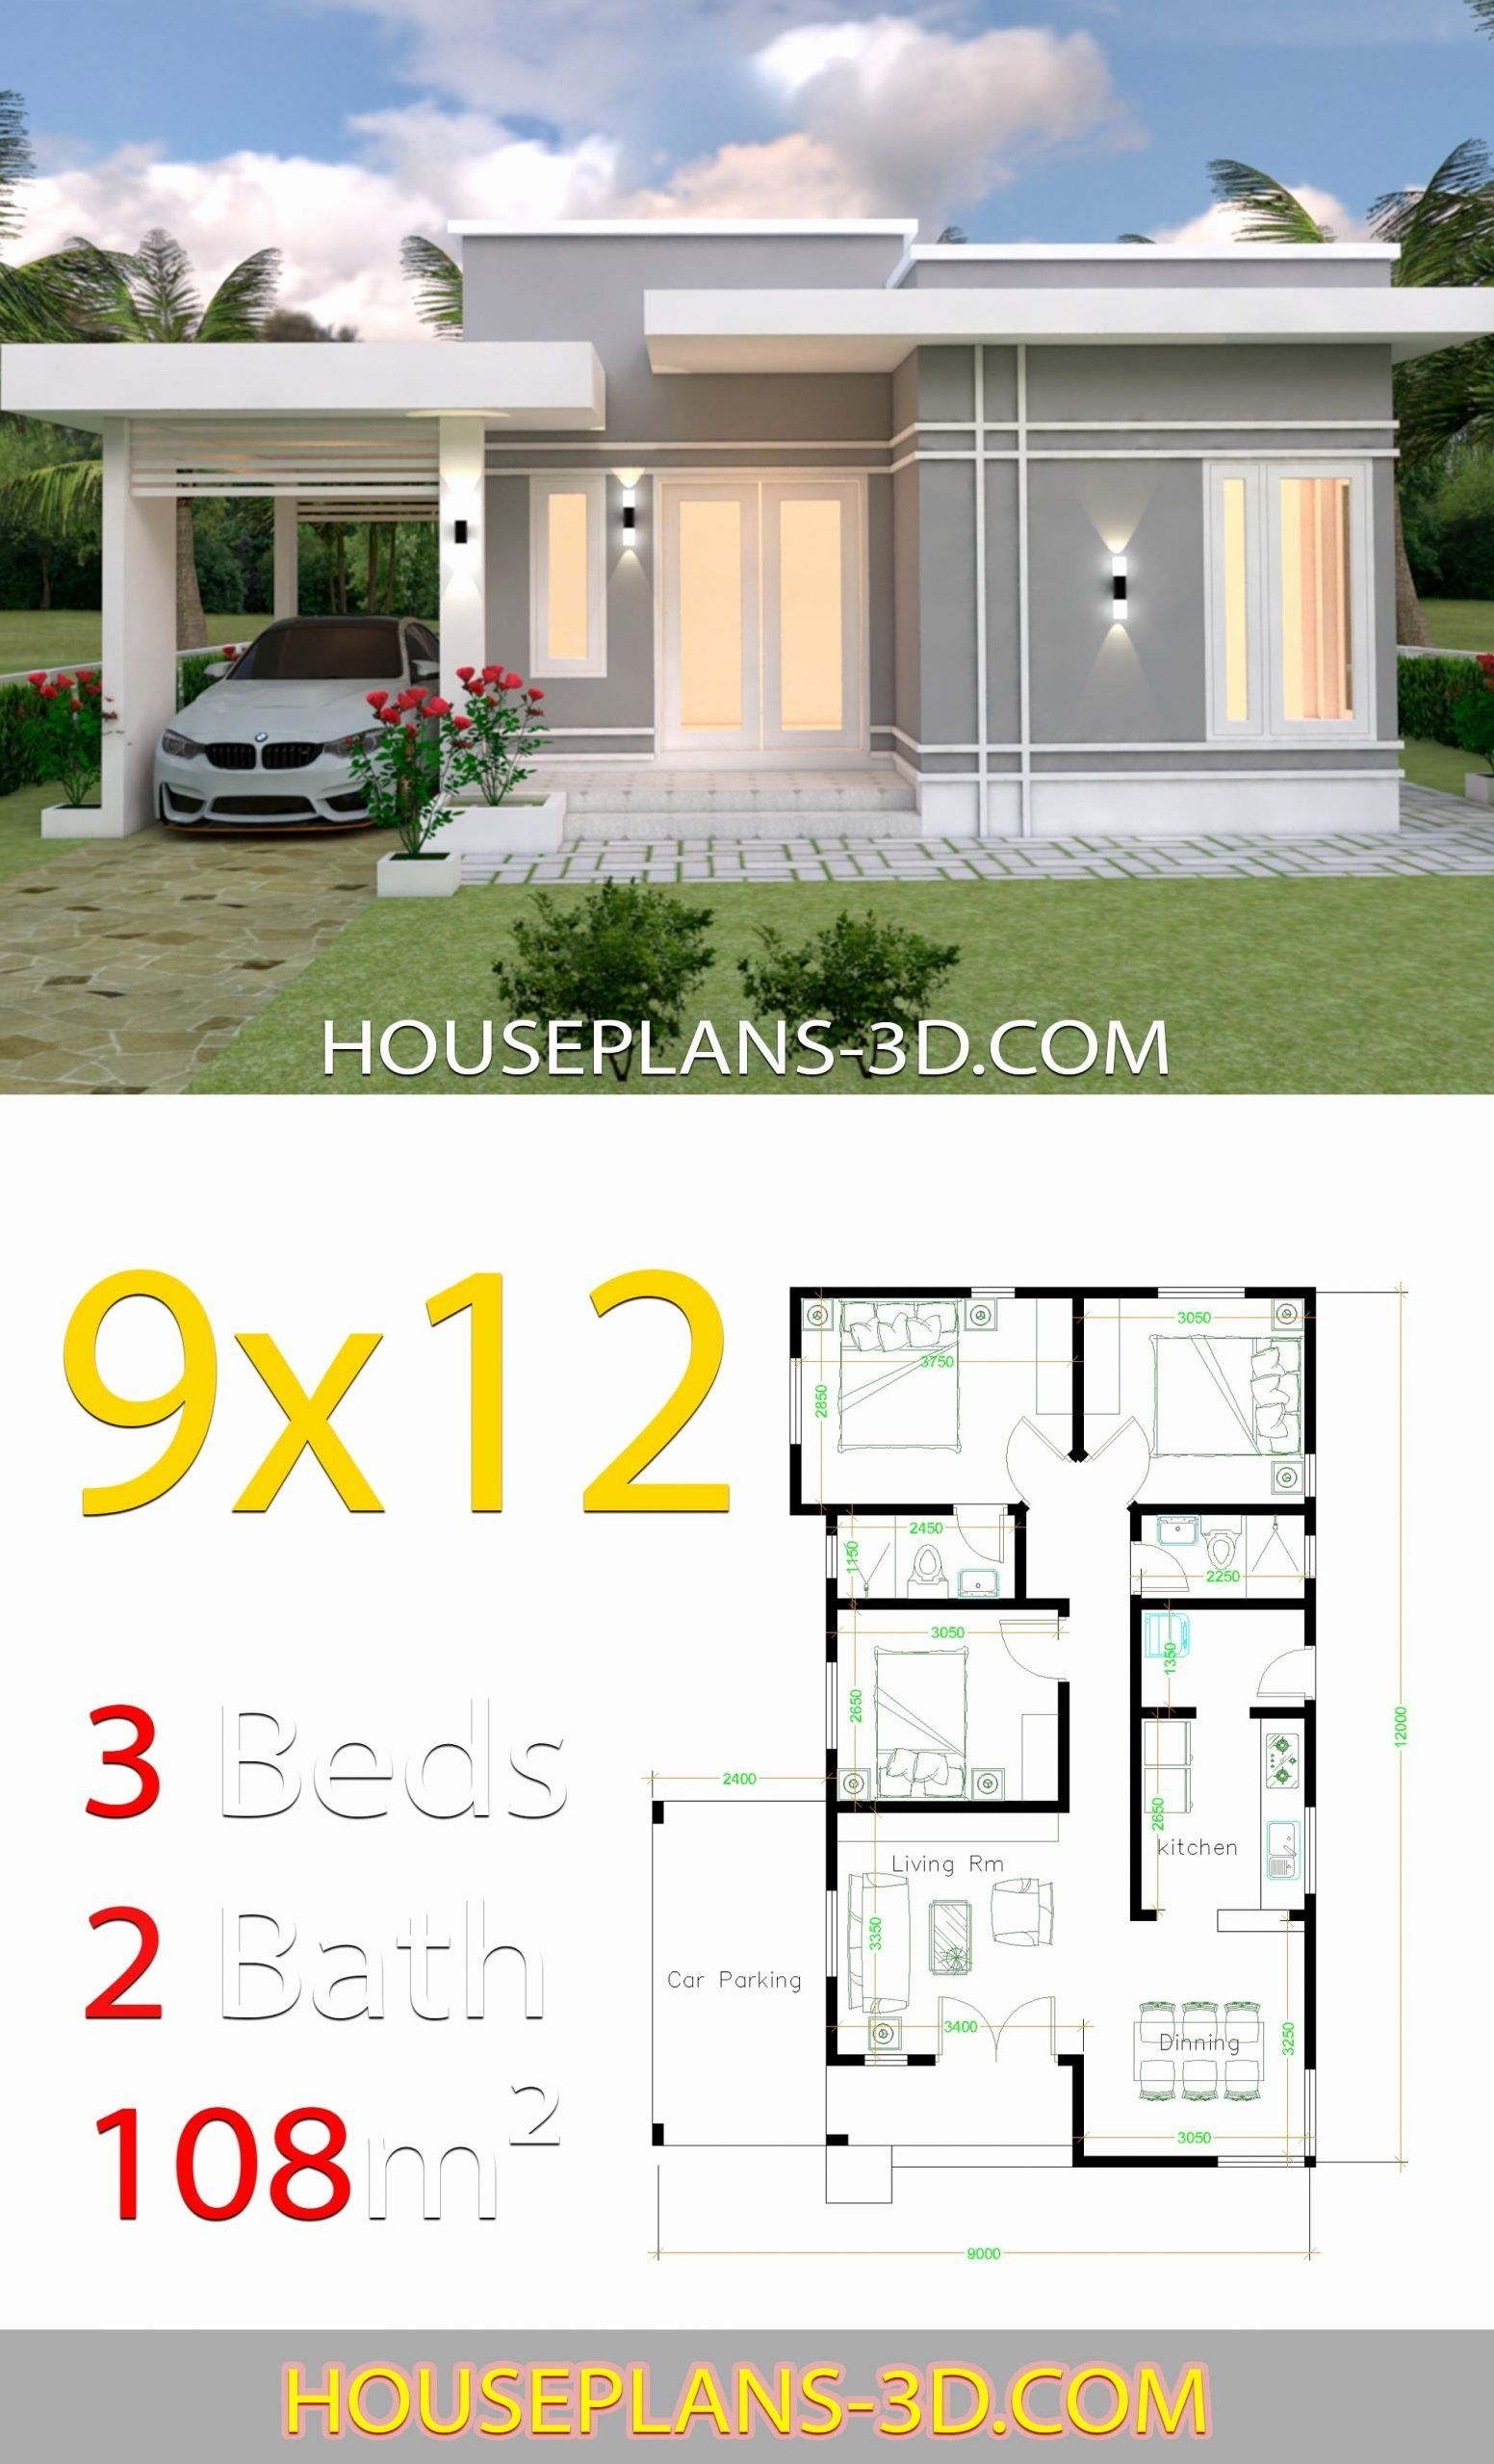 3d 3 Bedroom House Plans Fresh House Design Plans 9x12 With 3 Bedrooms Terrace Roof House In 2020 Guest House Plans House Construction Plan Architectural House Plans